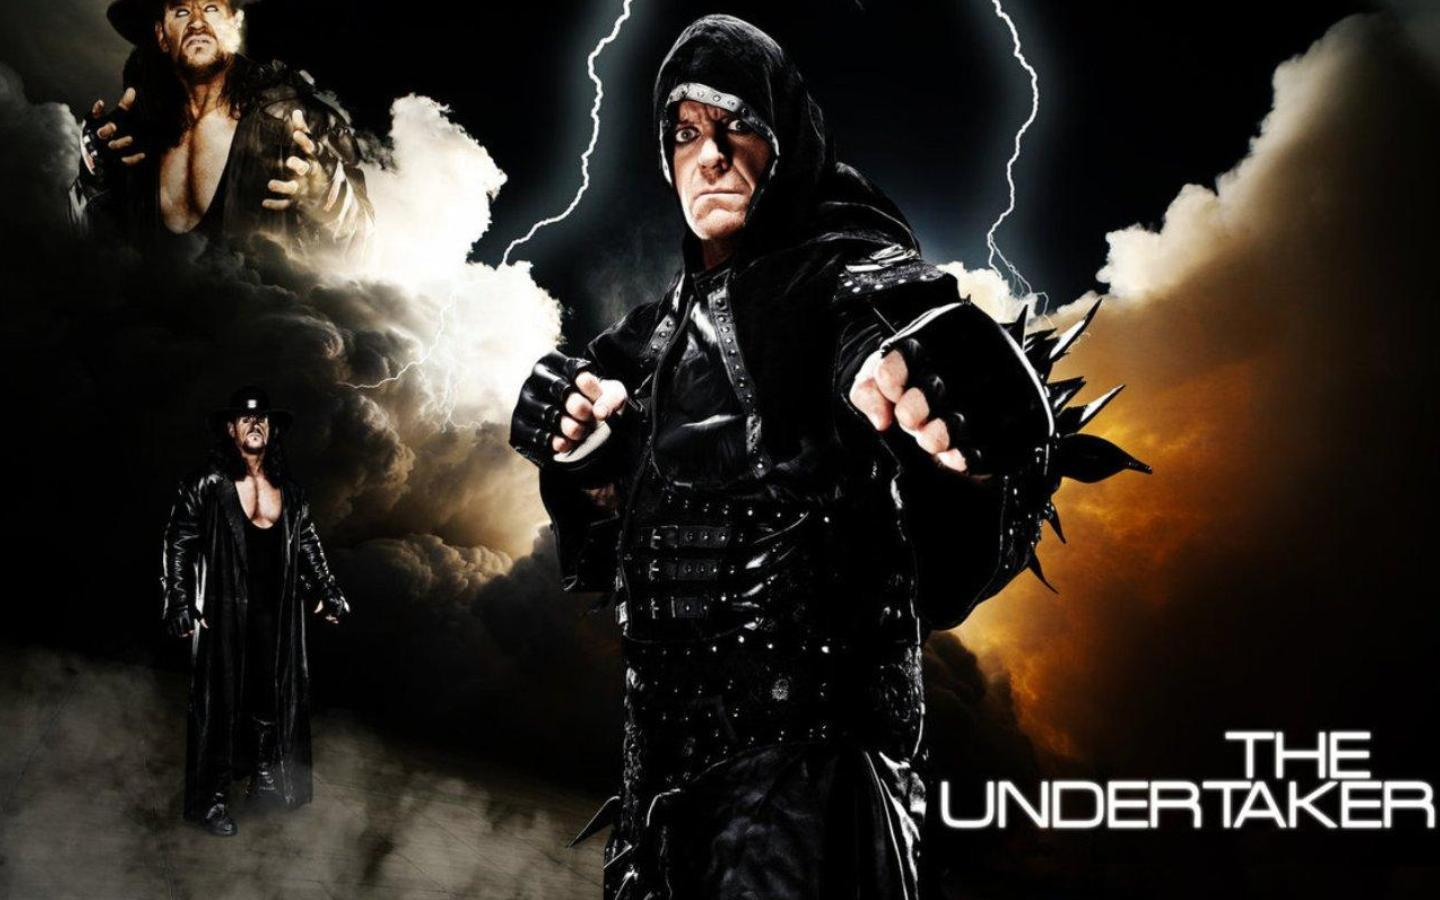 The undertaker hd wallpapers wallpaper cave wwe superstar undertaker latest hd wallpapers and new photos voltagebd Images